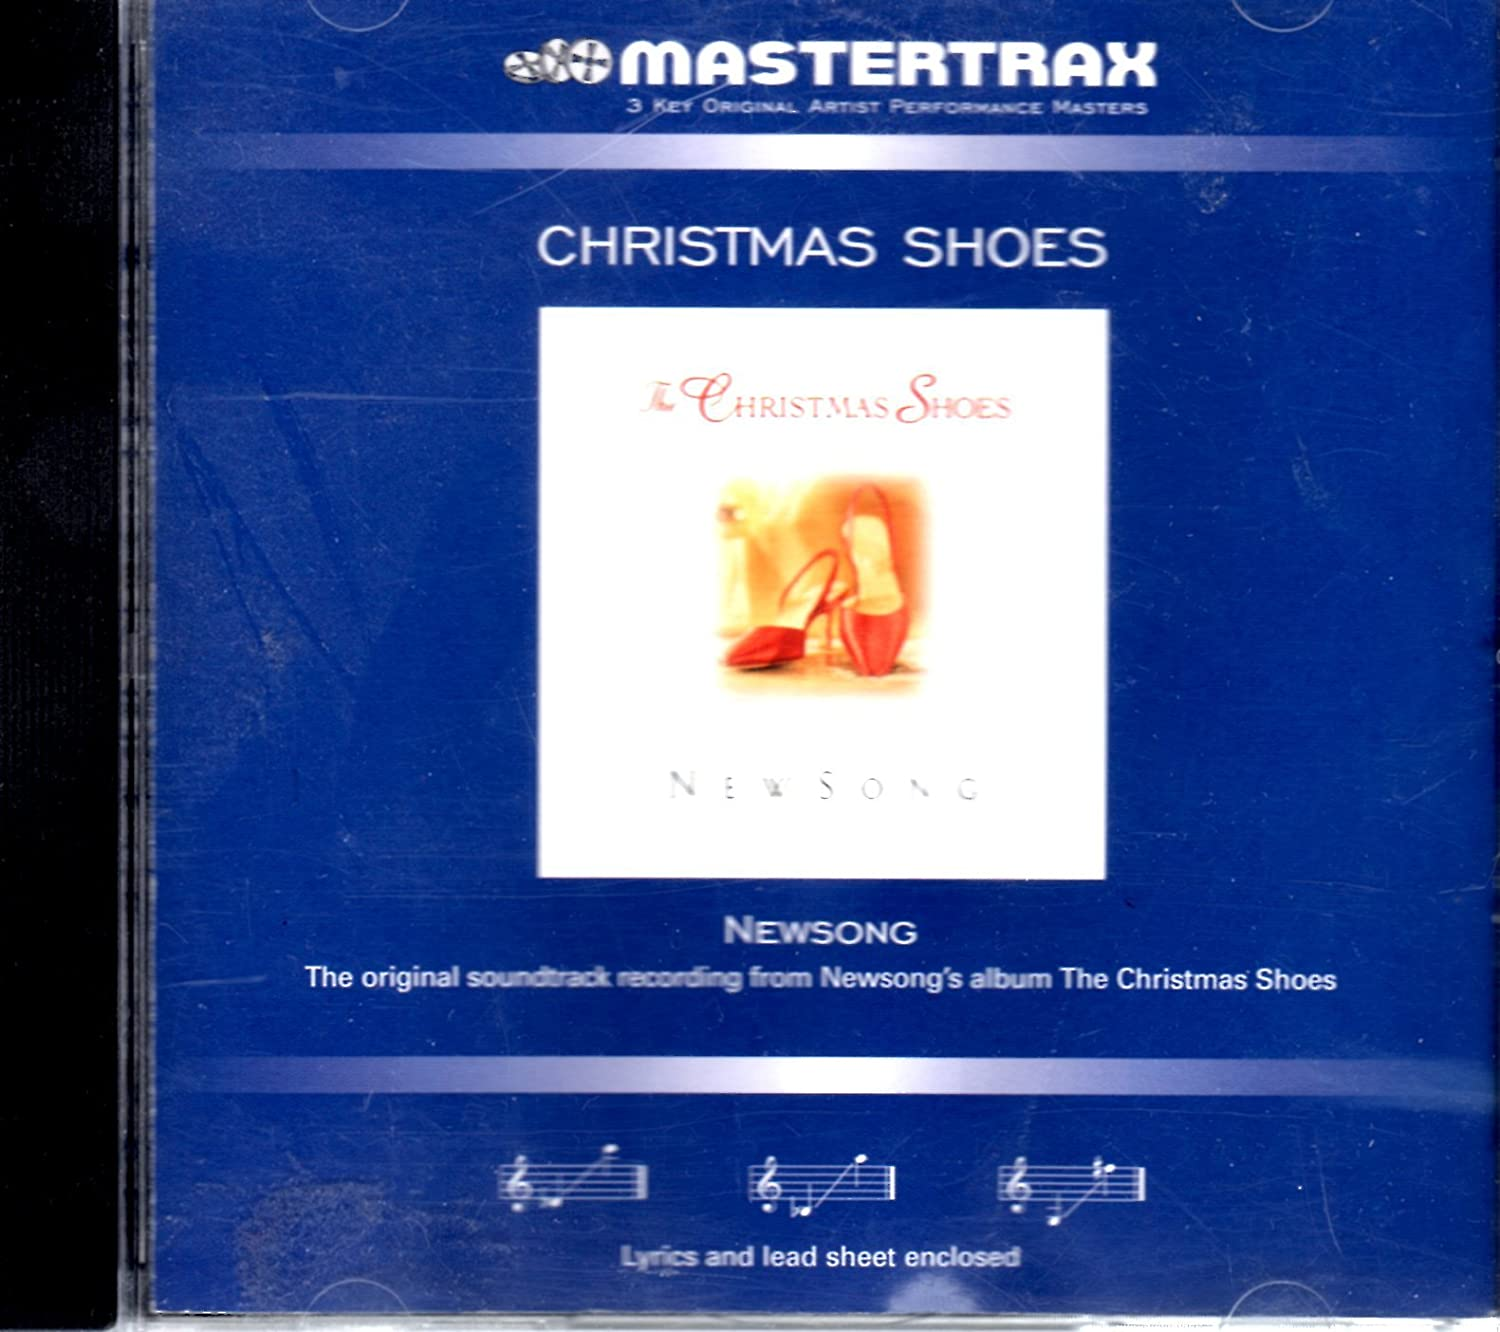 Christmas Shoes Lyrics.Mastertrax Mastertrax Christmas Shoes Amazon Com Music